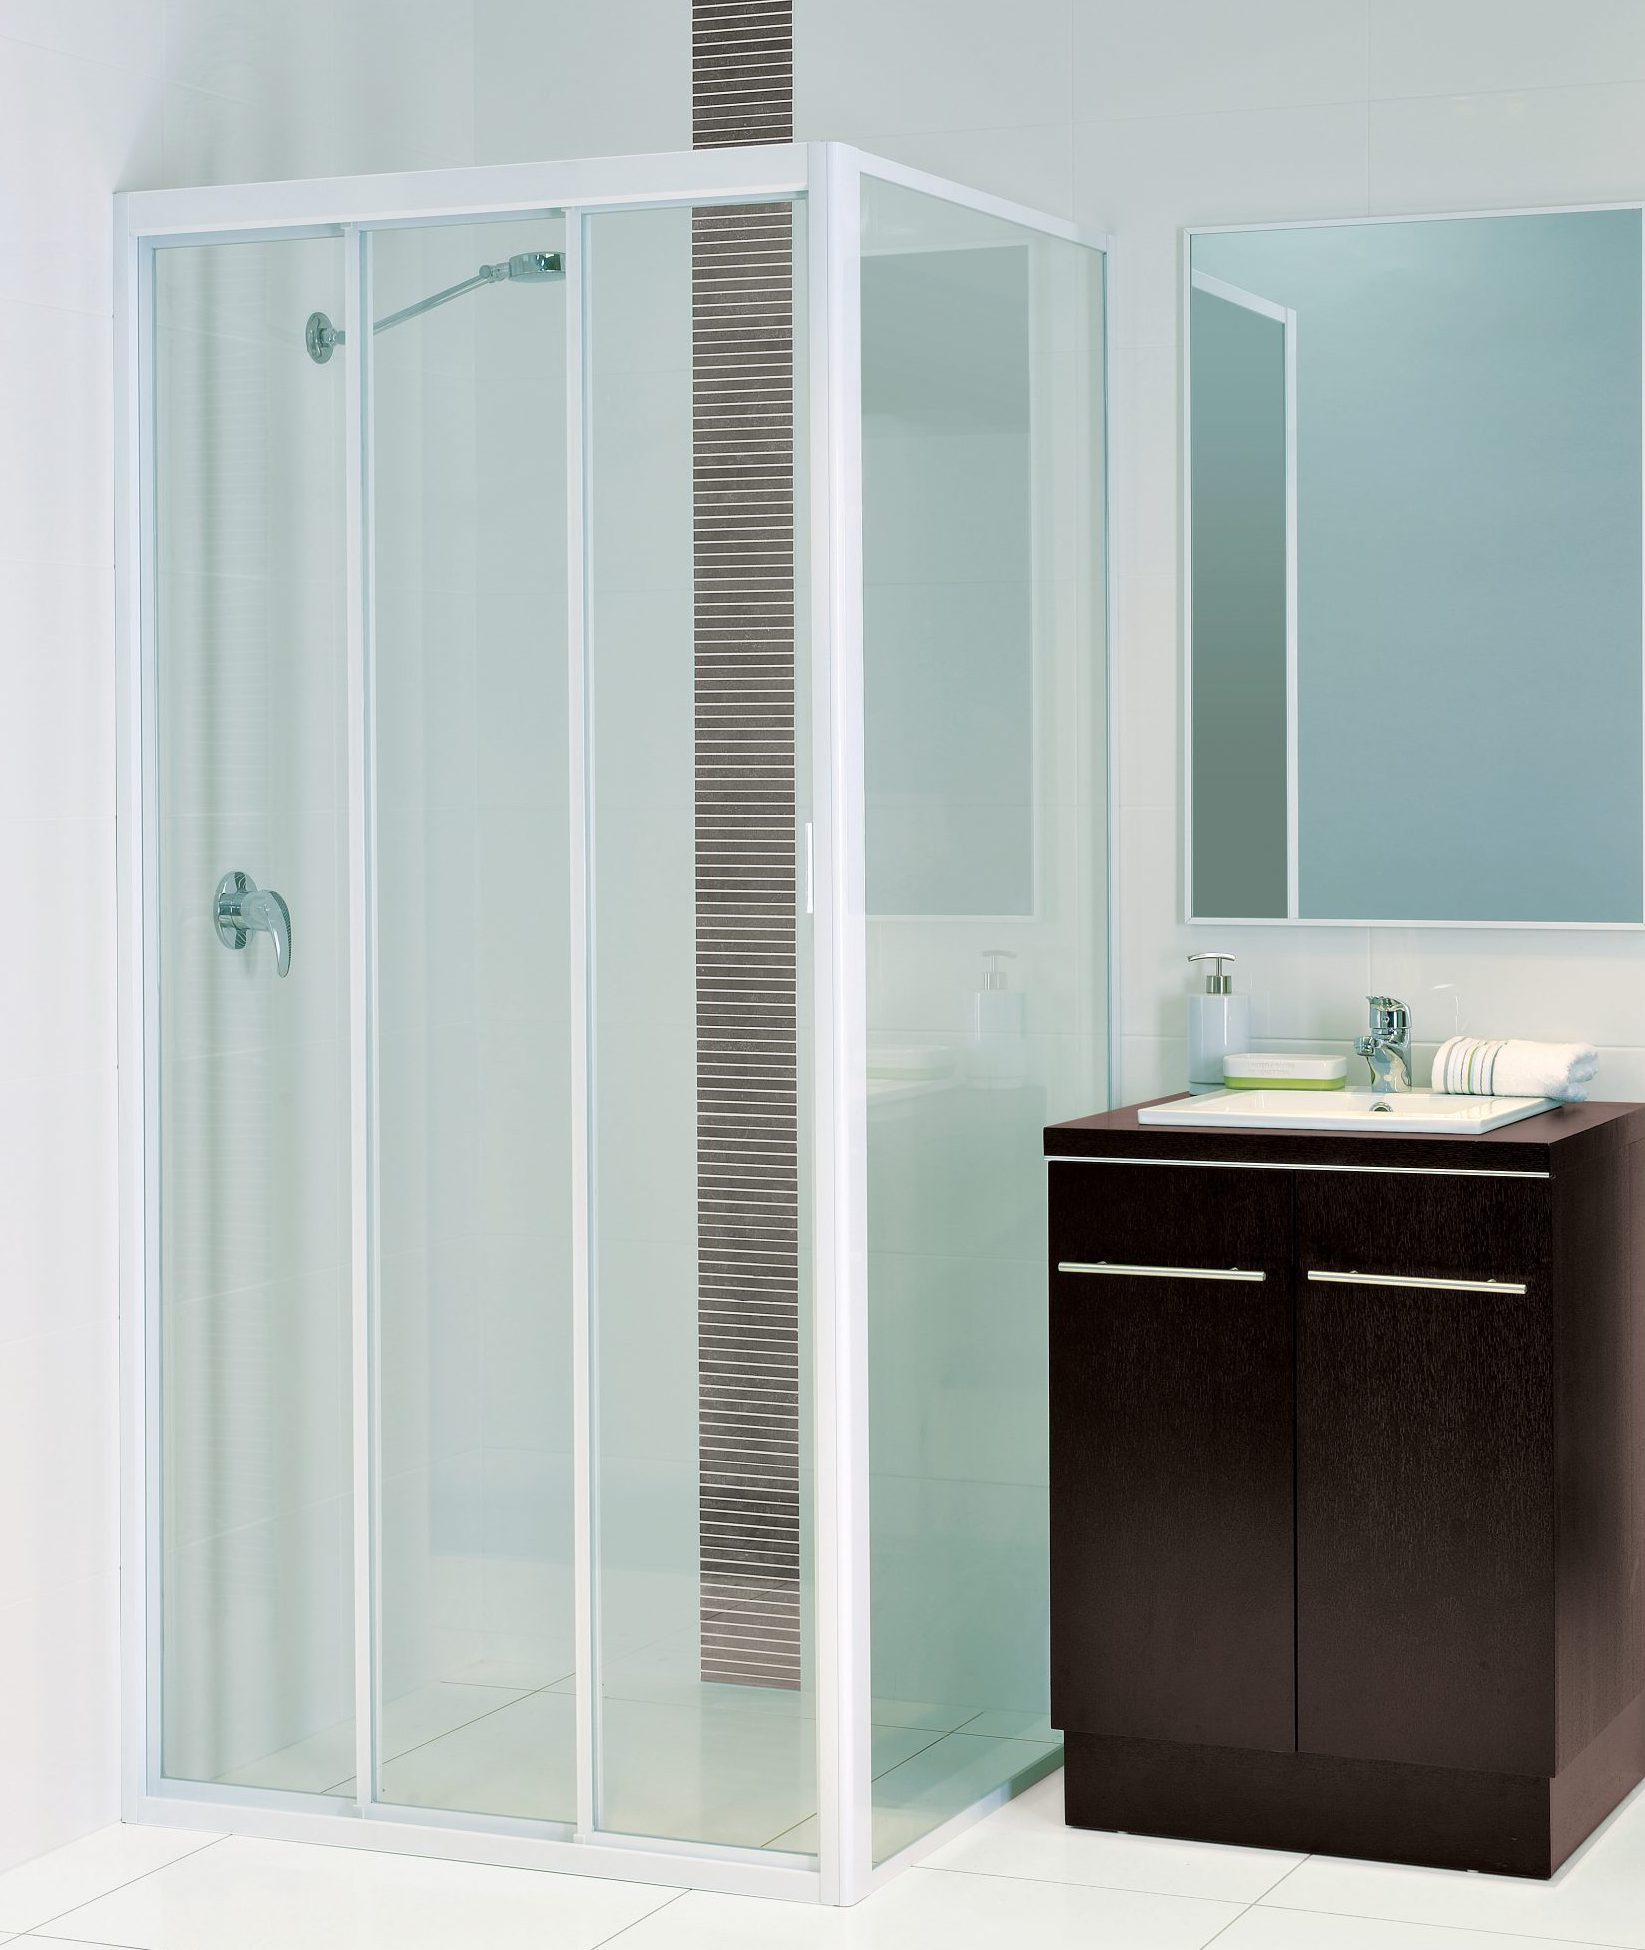 Sliding shower screen - 3 Door Slider Three Door Sliding Shower Screen